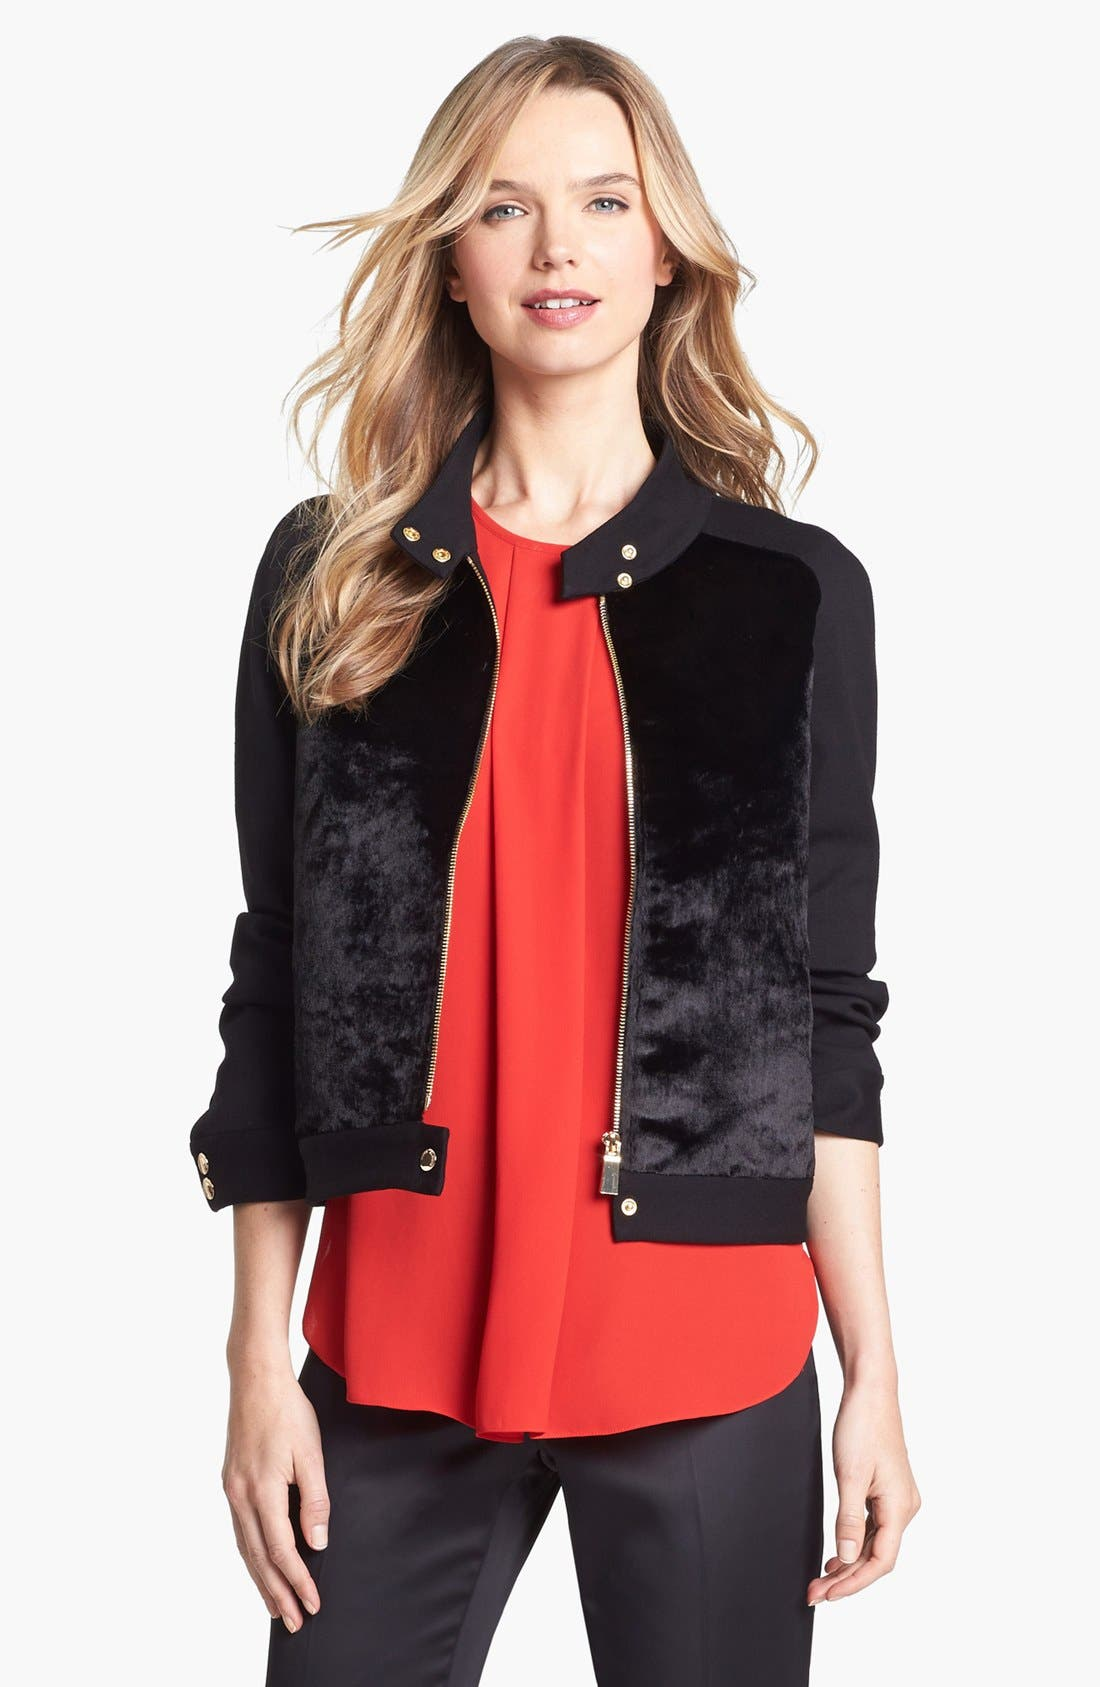 Main Image - Vince Camuto Faux Calf Hair & Ponte Knit Jacket